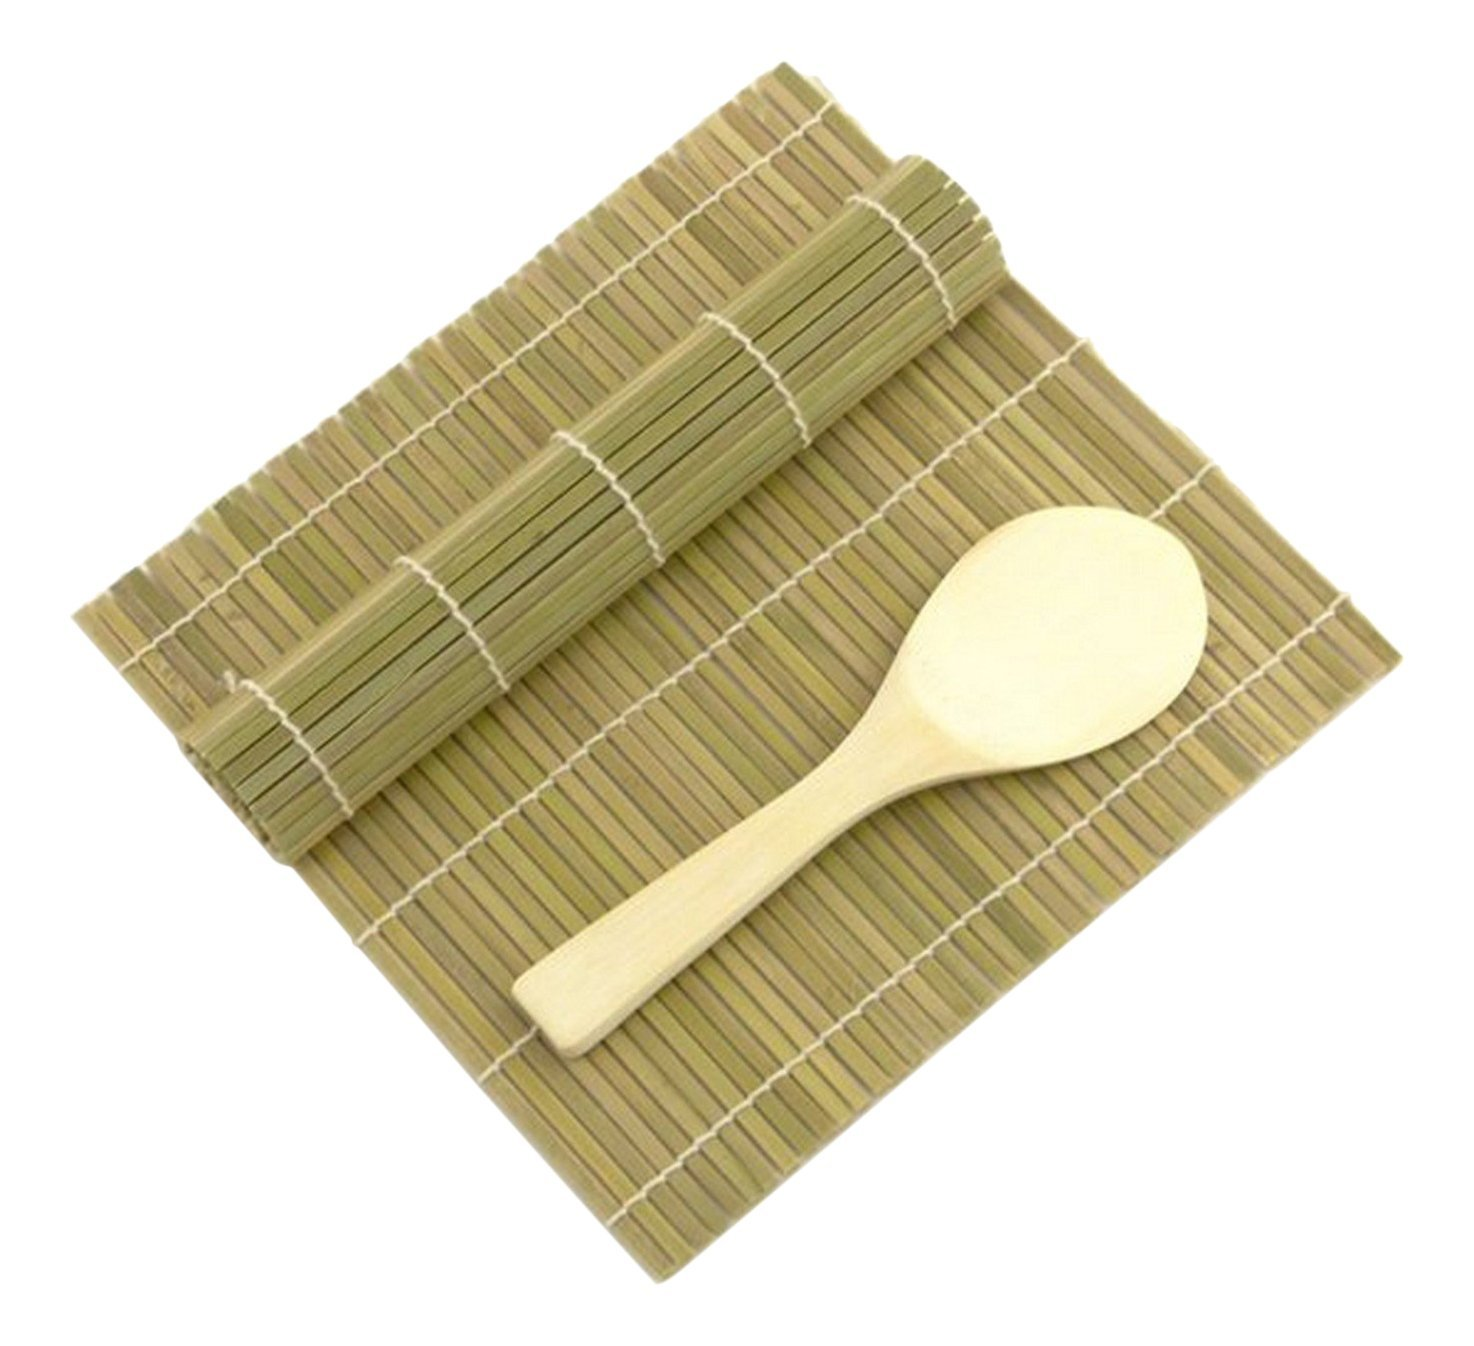 JapanBargain Green/Green Bamboo Sushi Rolling Kit Mat With Rice Paddle Set 3676-A